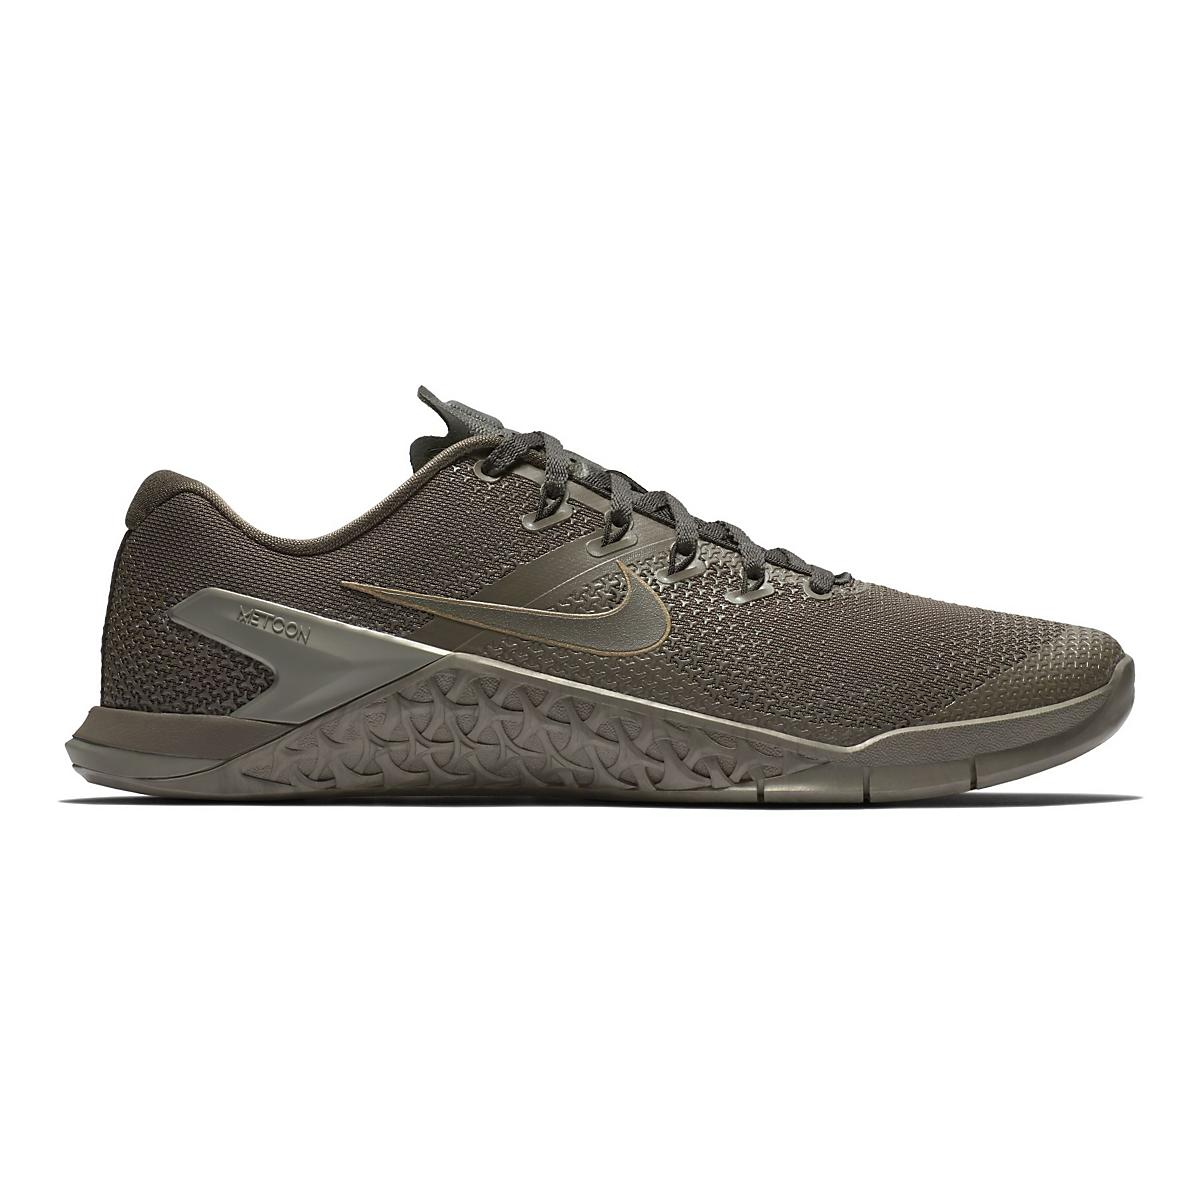 303318ea1740 ... spain mens nike metcon 4 viking quest cross training shoe at road  runner sports b8b4f c23ae